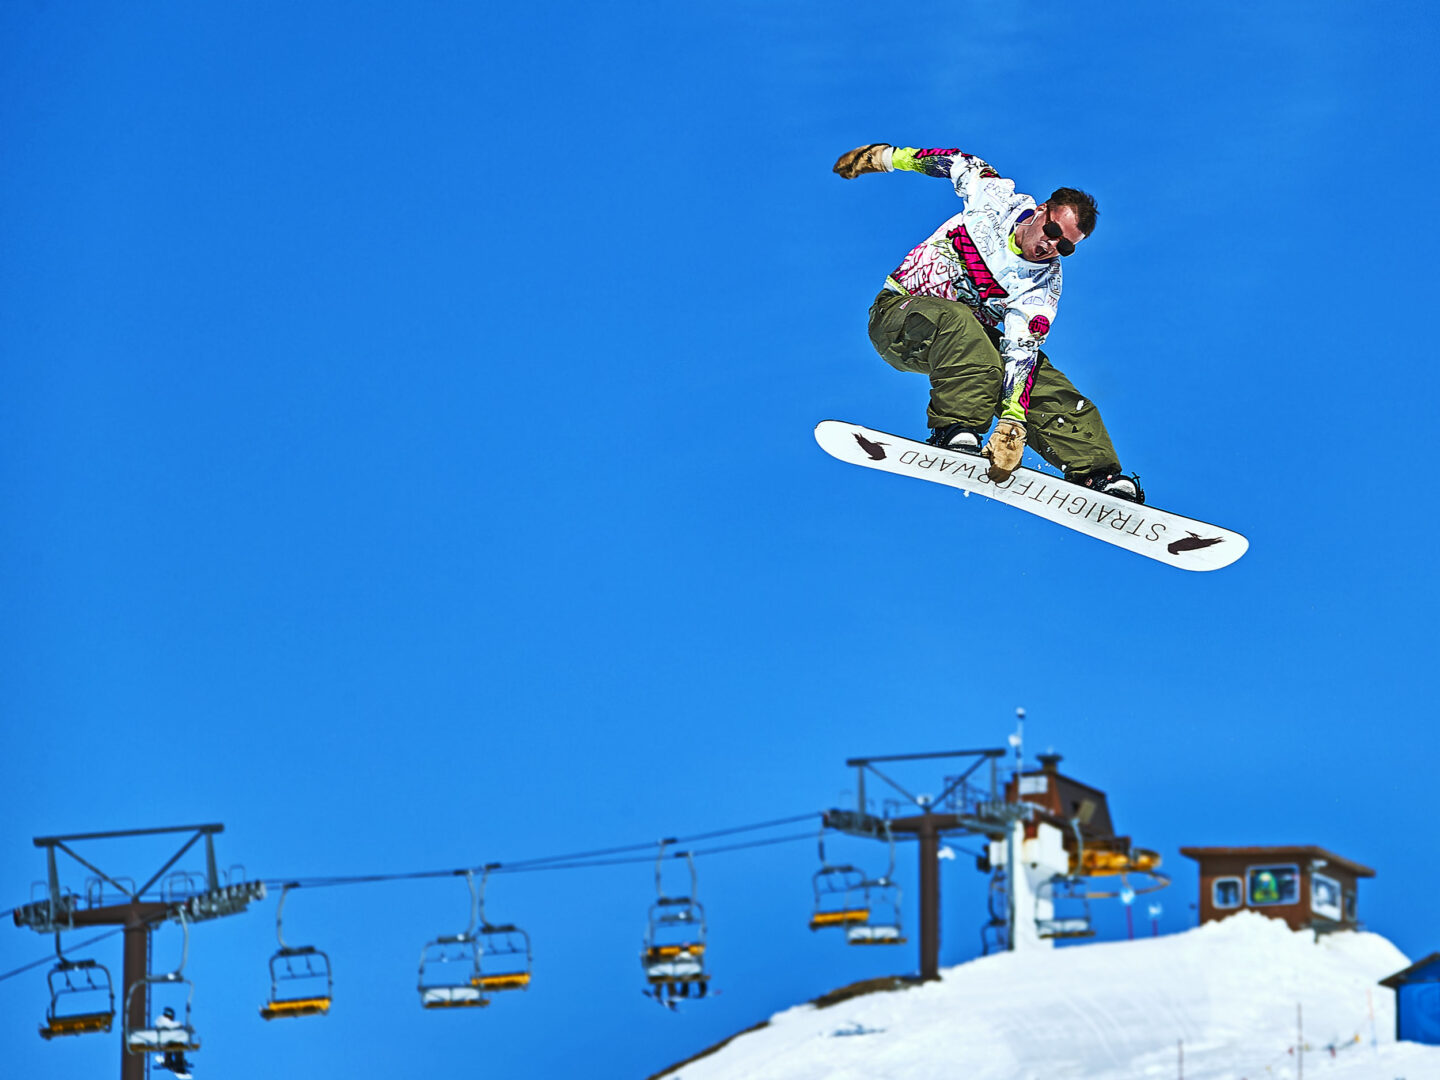 Sports Photography Snowboard Funky The Guardian